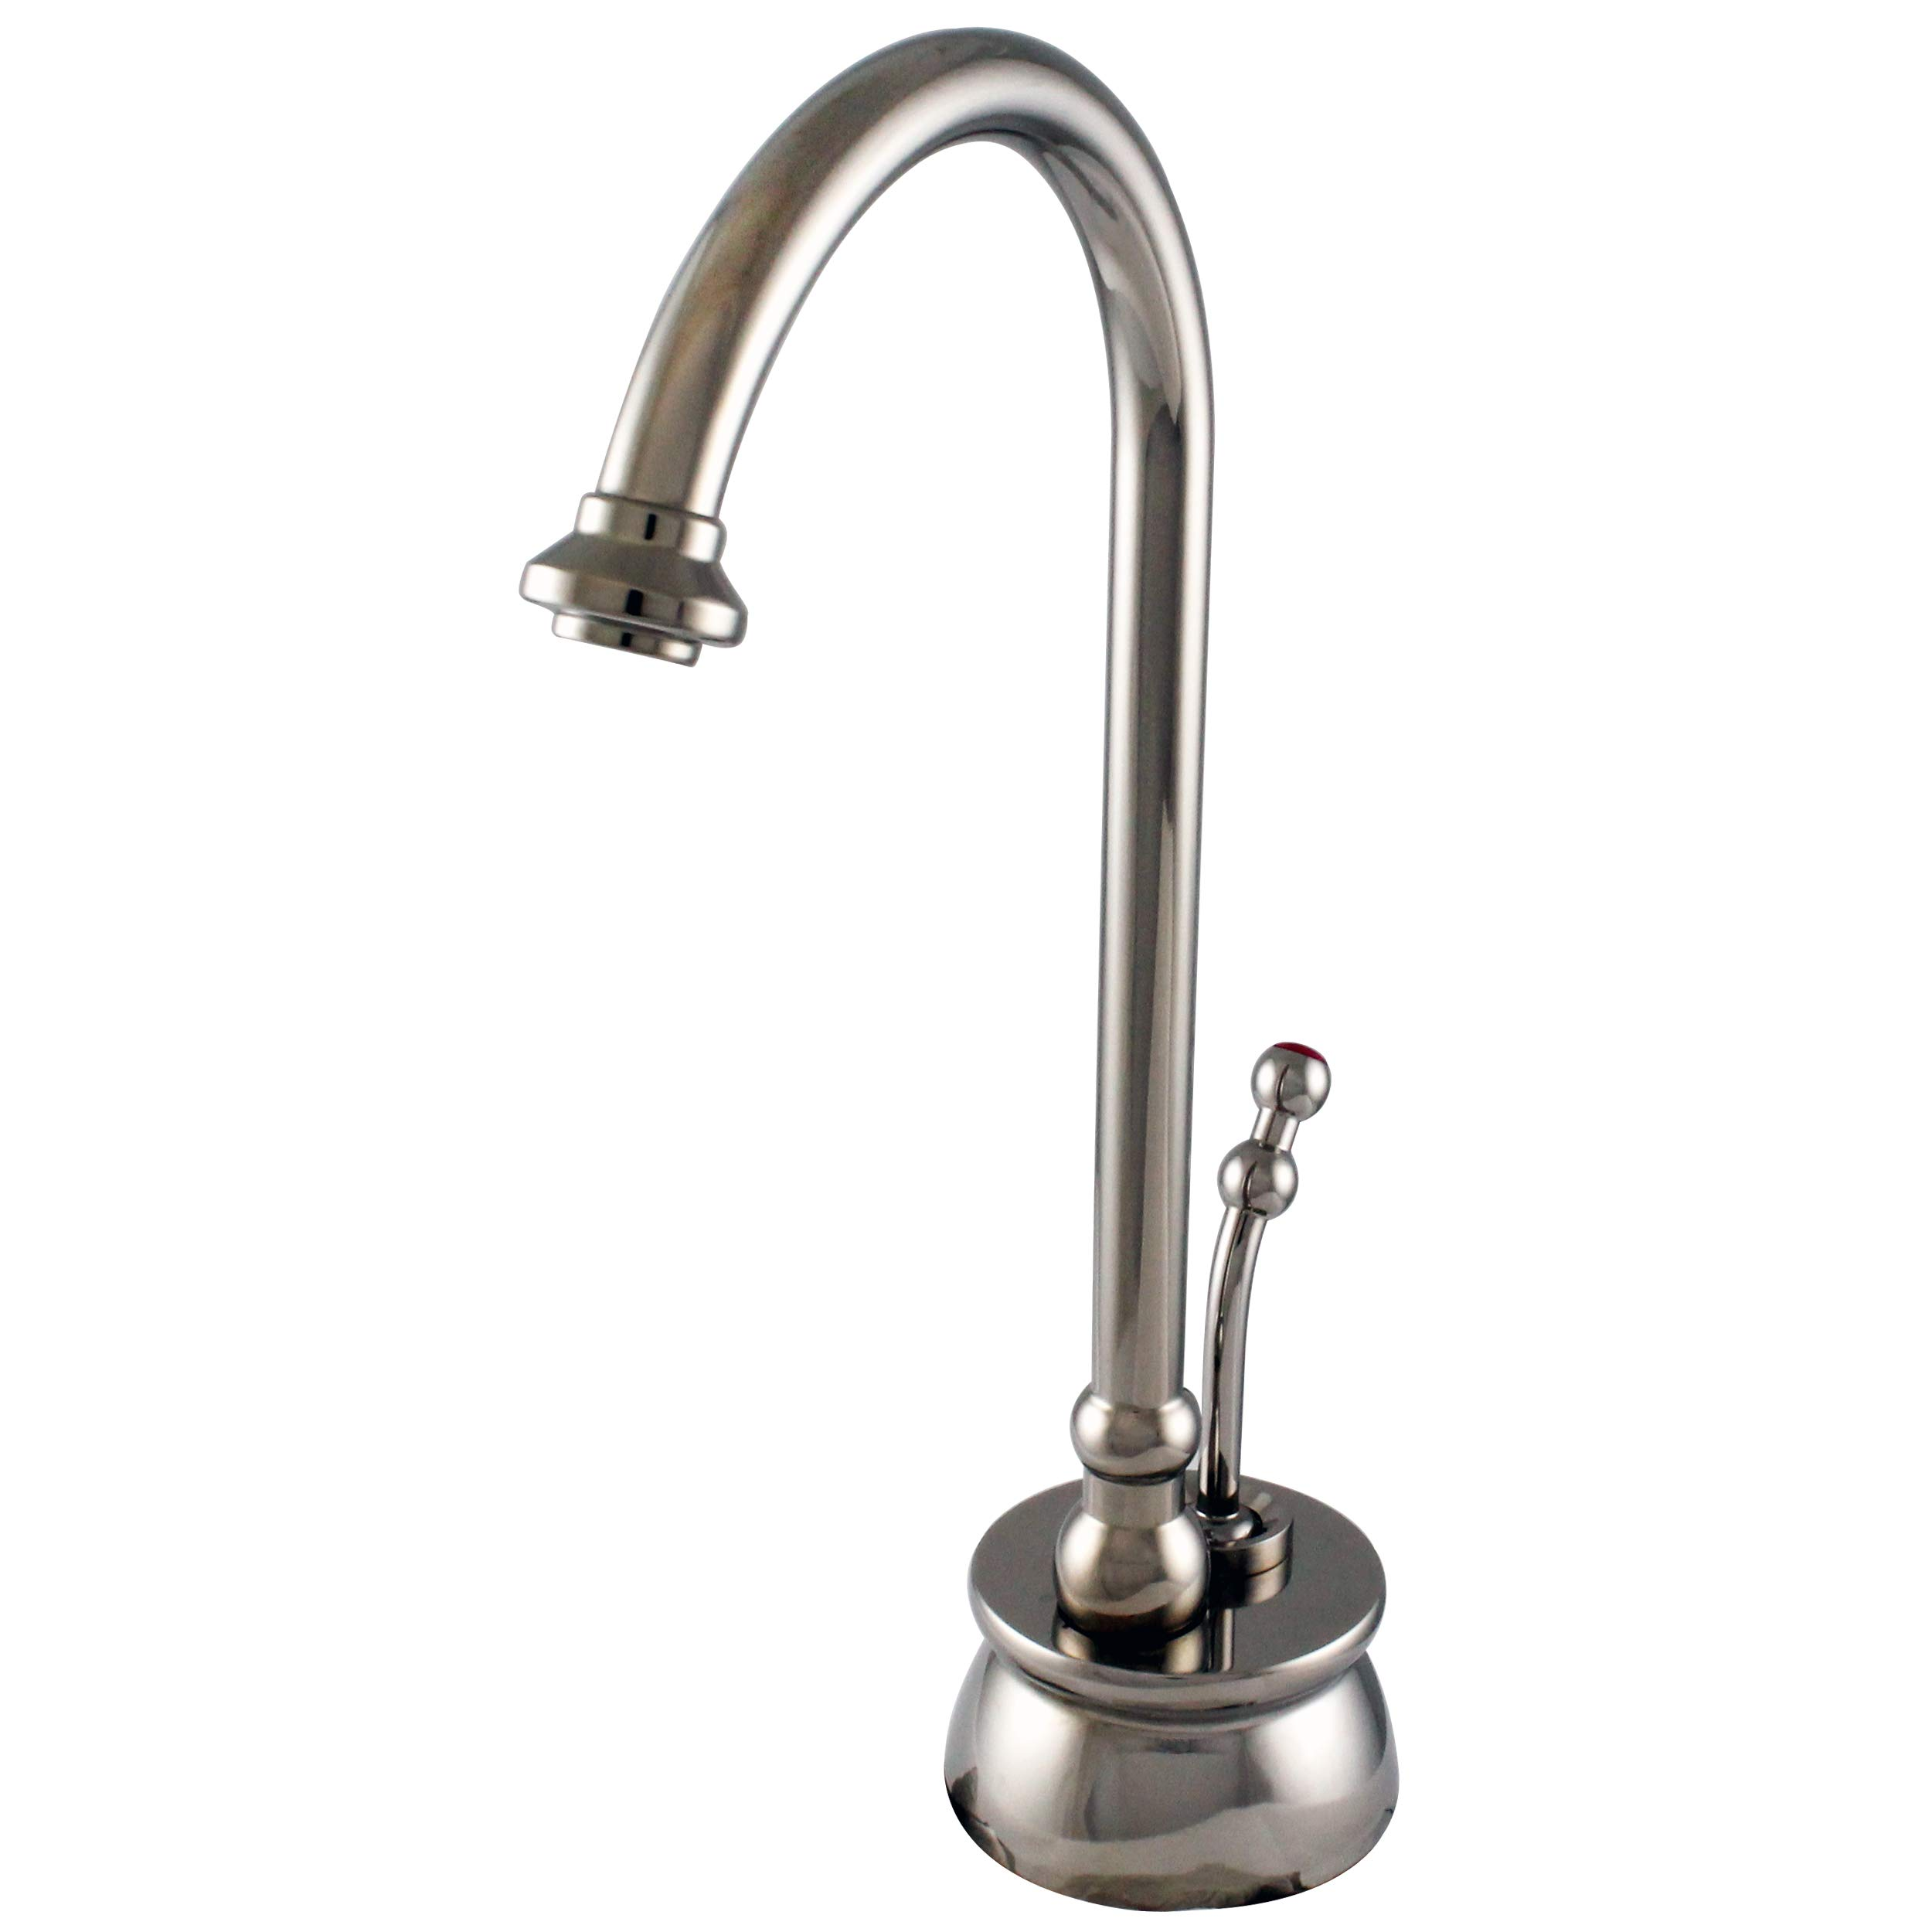 Westbrass D261-NL-05 Lead-Free Calorah Single-Handle Hot Water Dispenser Faucet in Polished Nickel by Westbrass